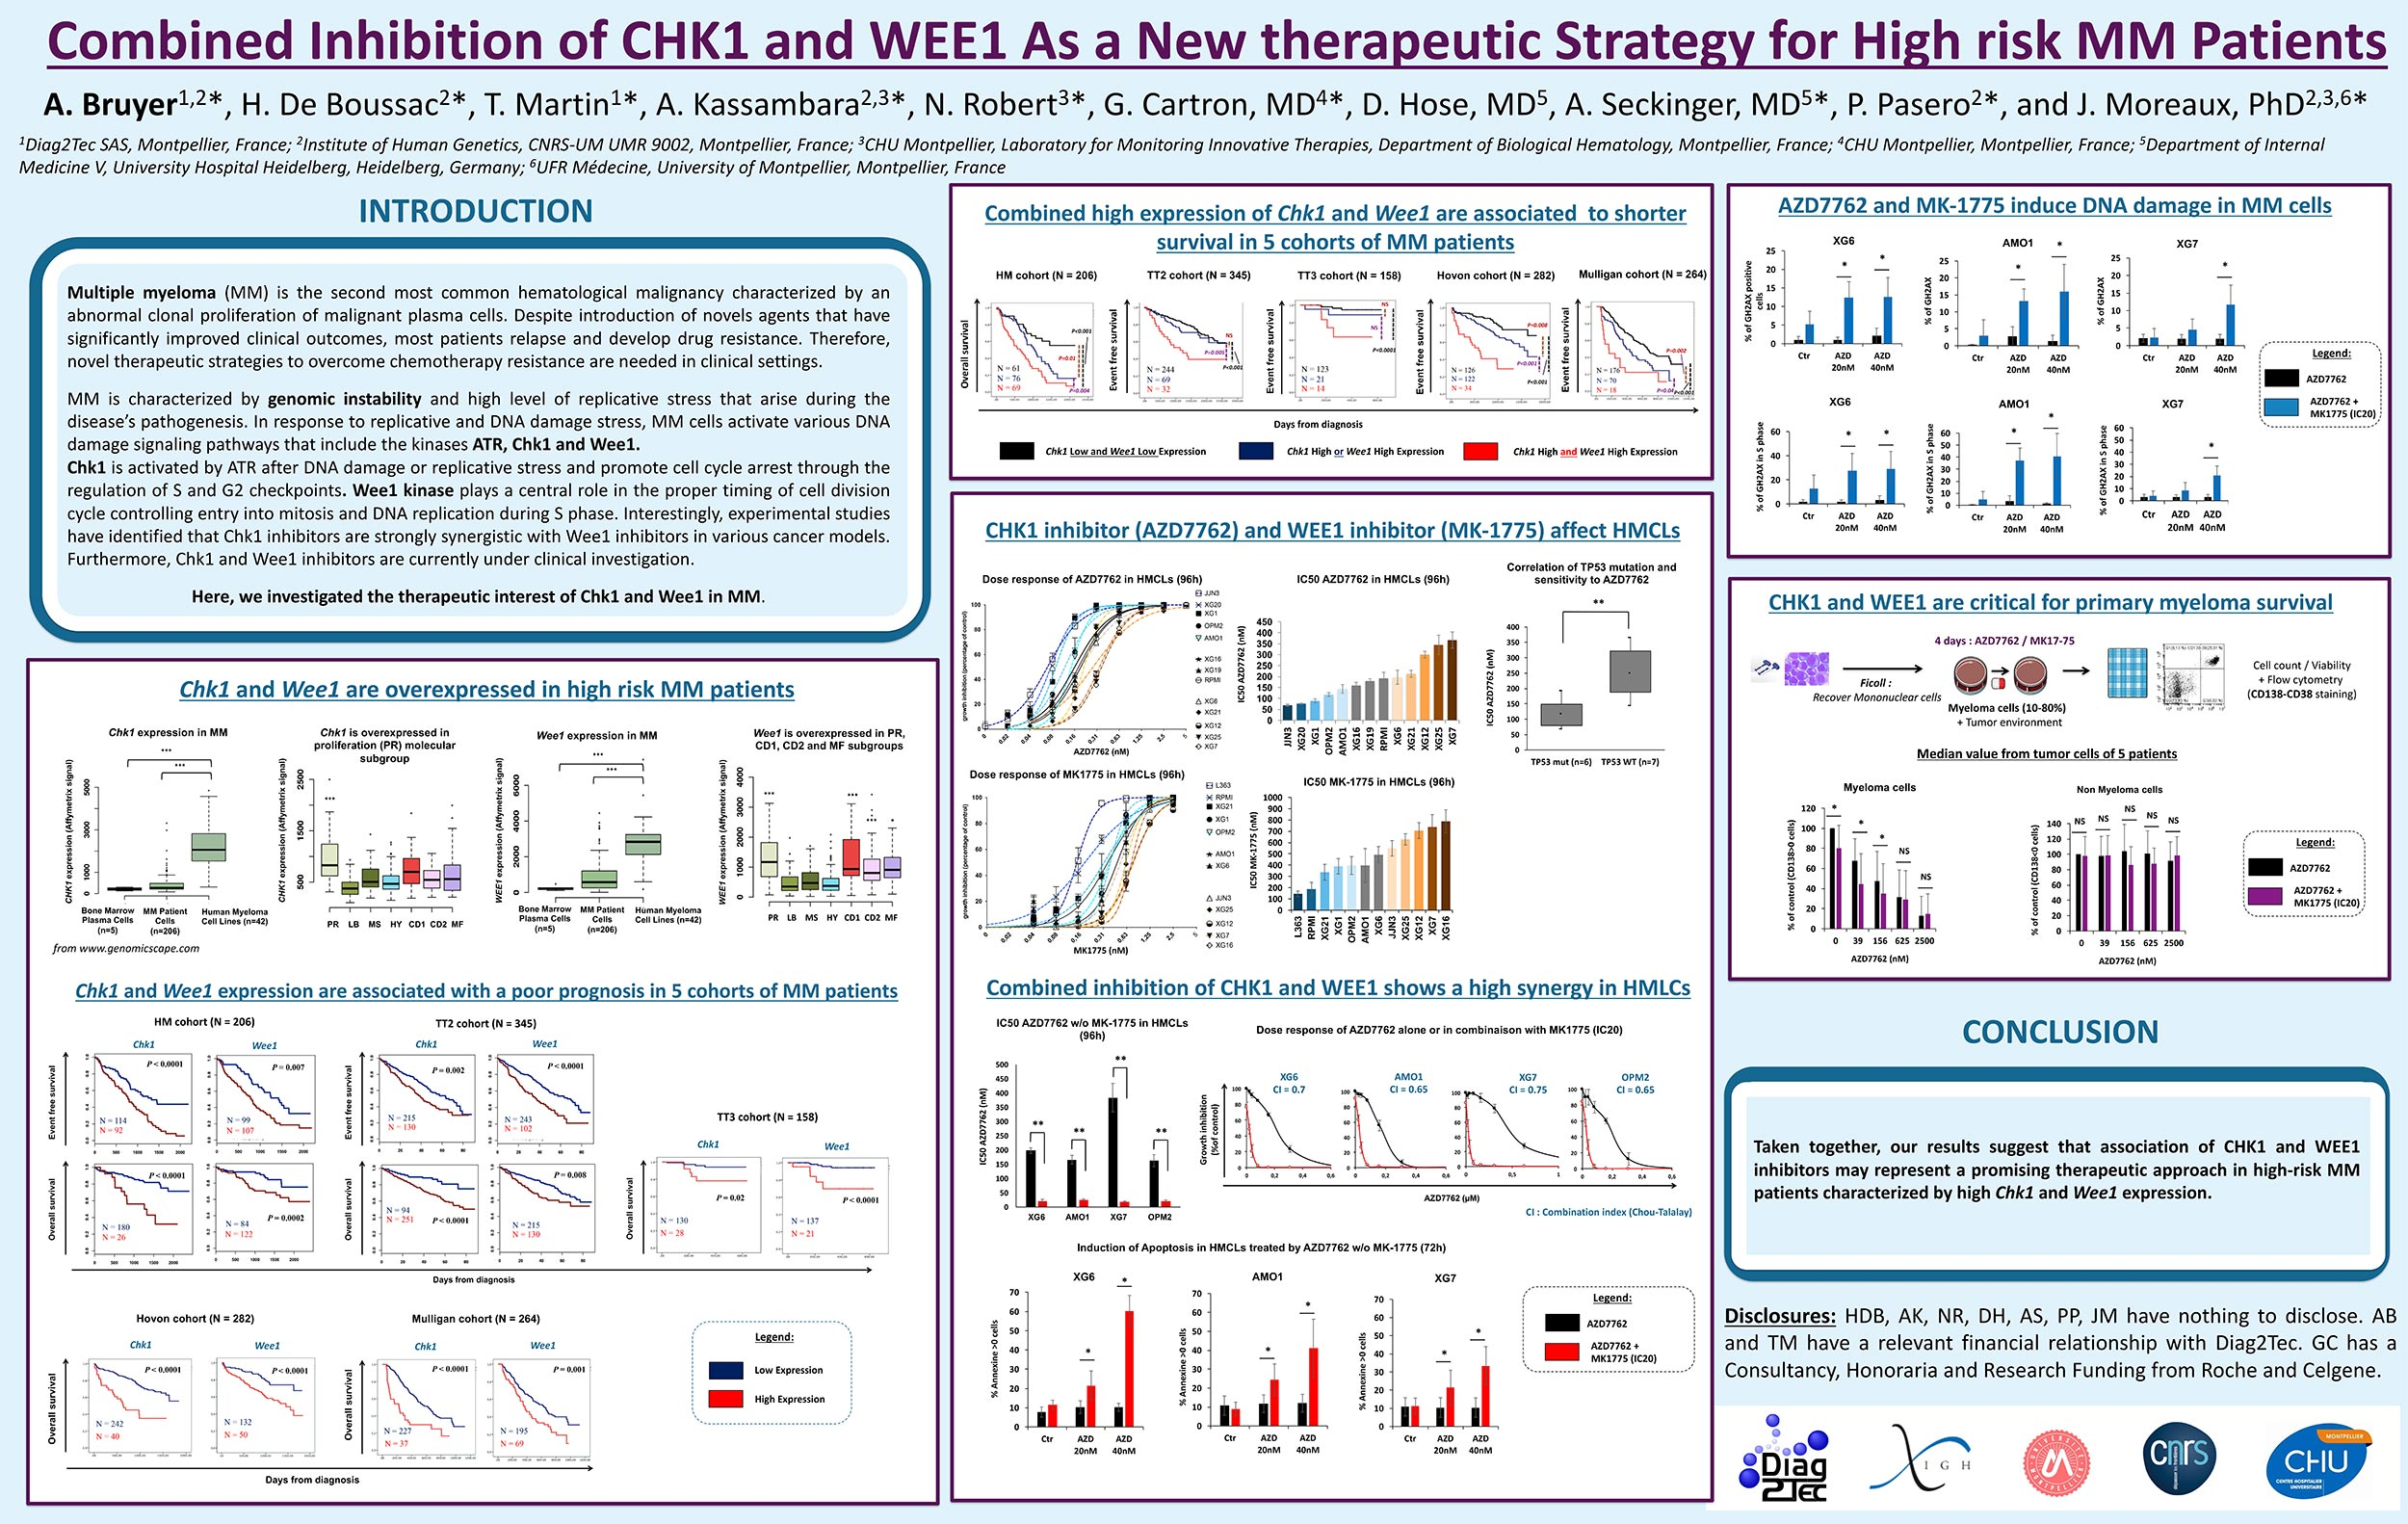 Our abstract has been selected for a poster presentation in the Annual Congres of American Society of Hematology in 2017 (San Diego).